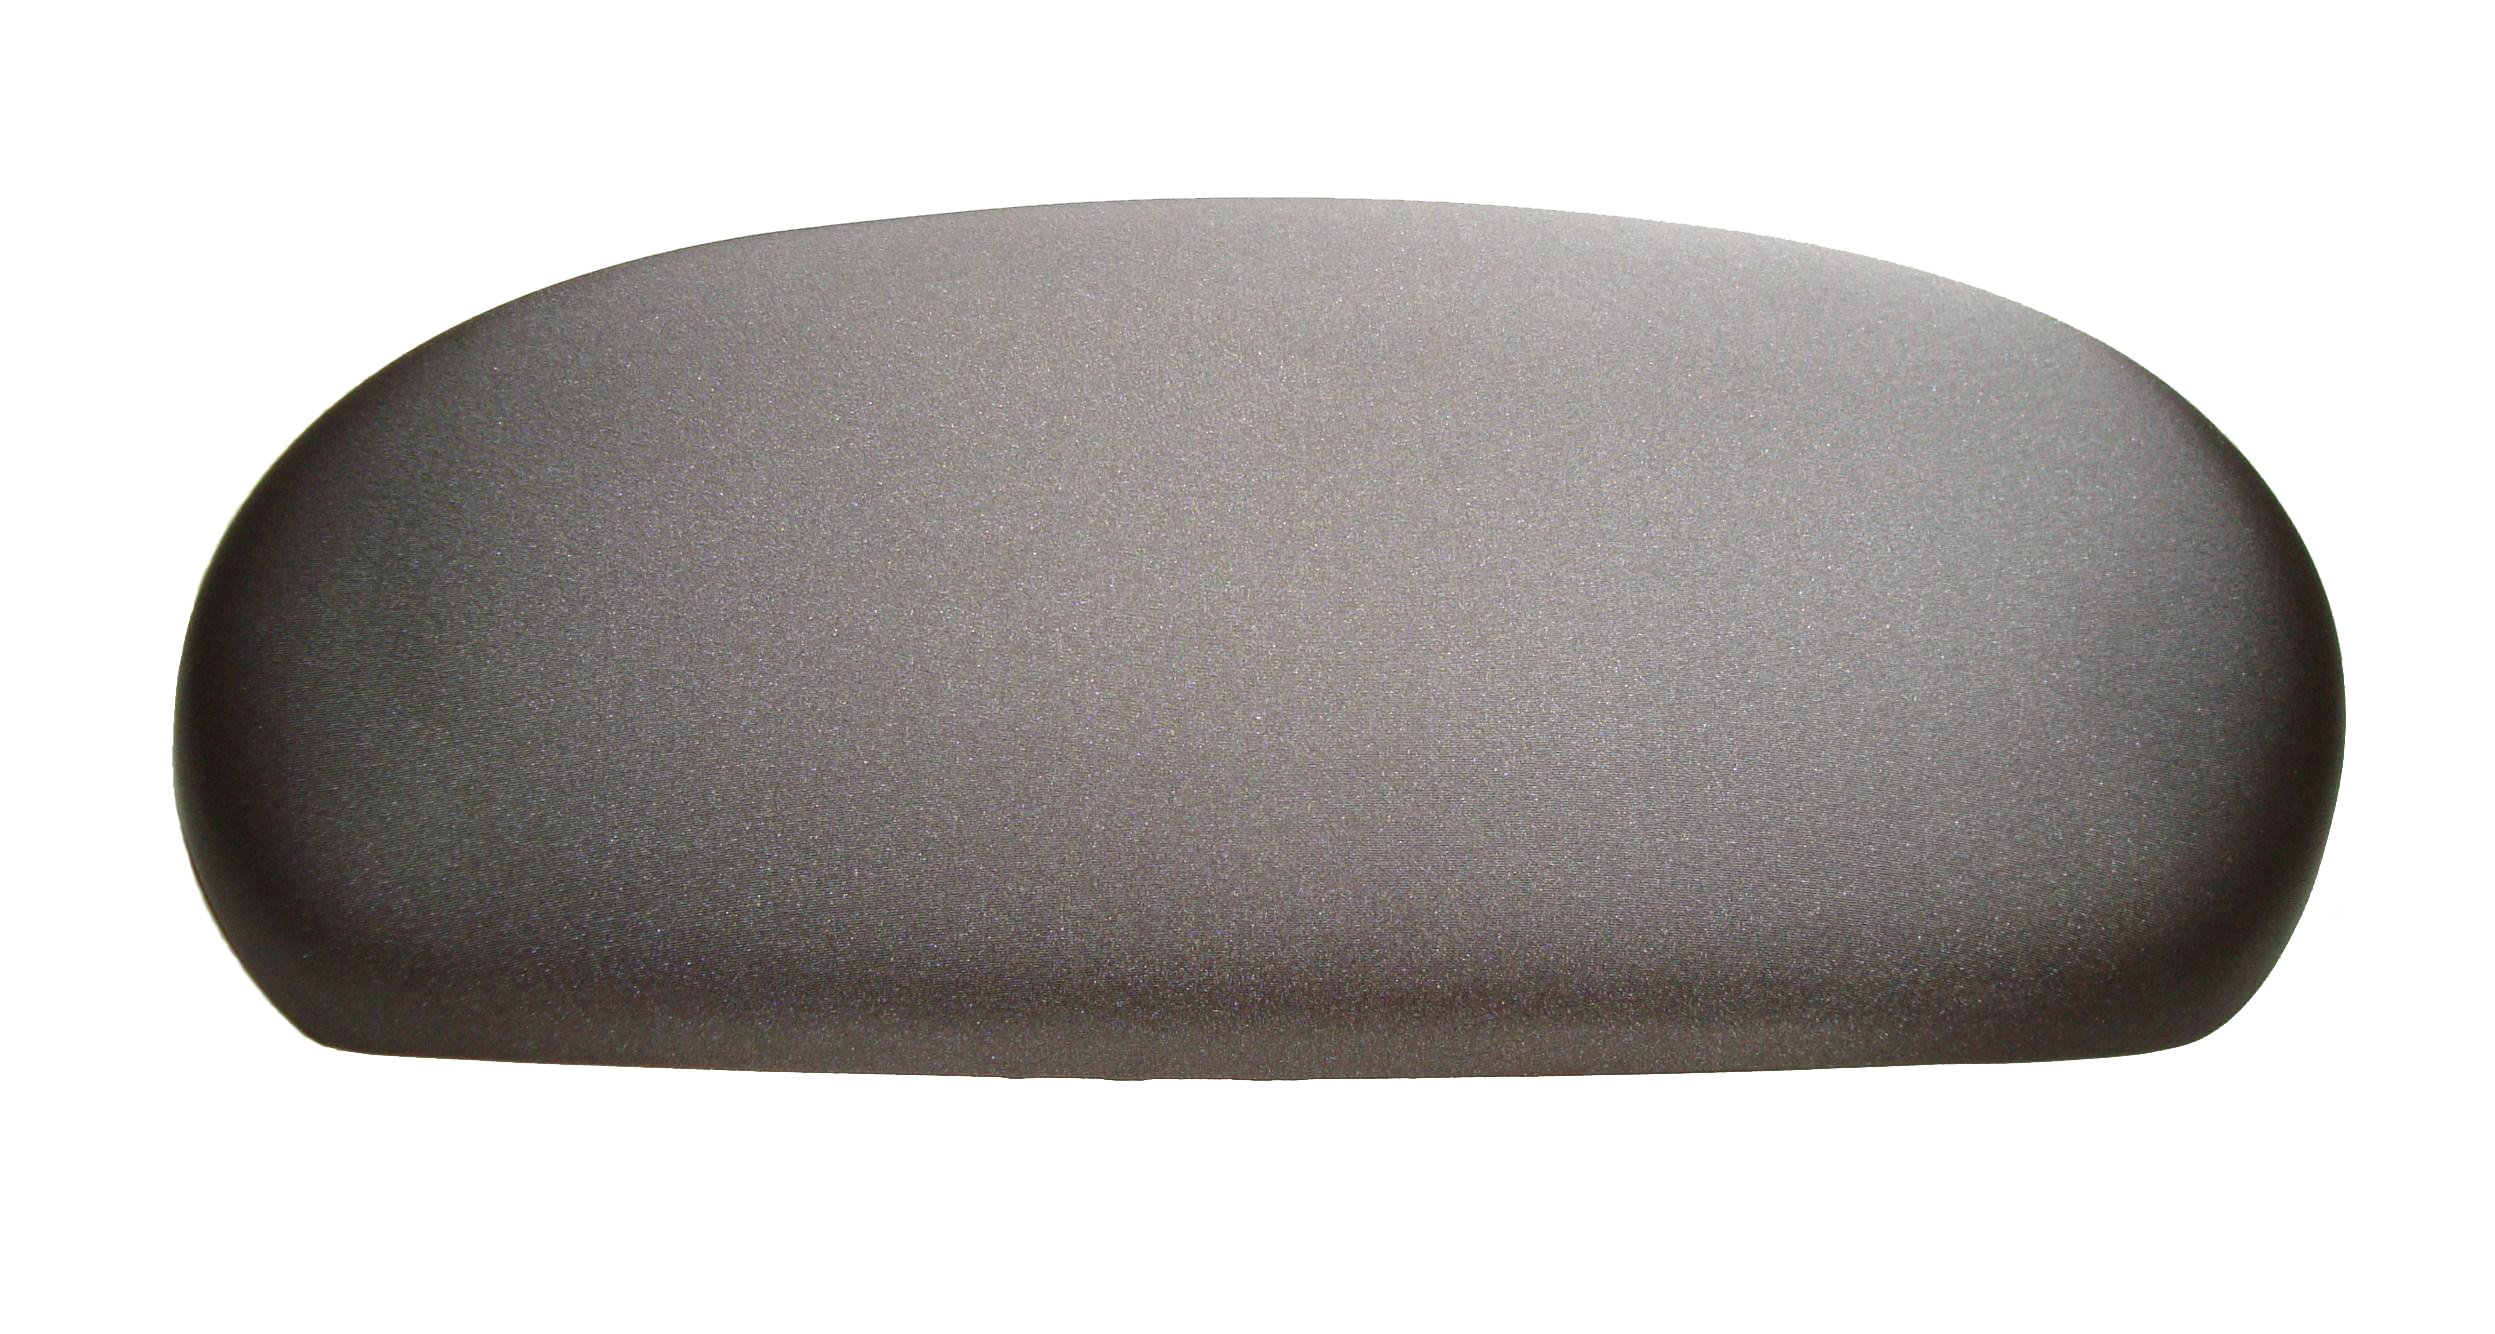 NCC New Concept Cover Fabric Cover for a lid Toilet Tank - Handmade in USA (Gray)